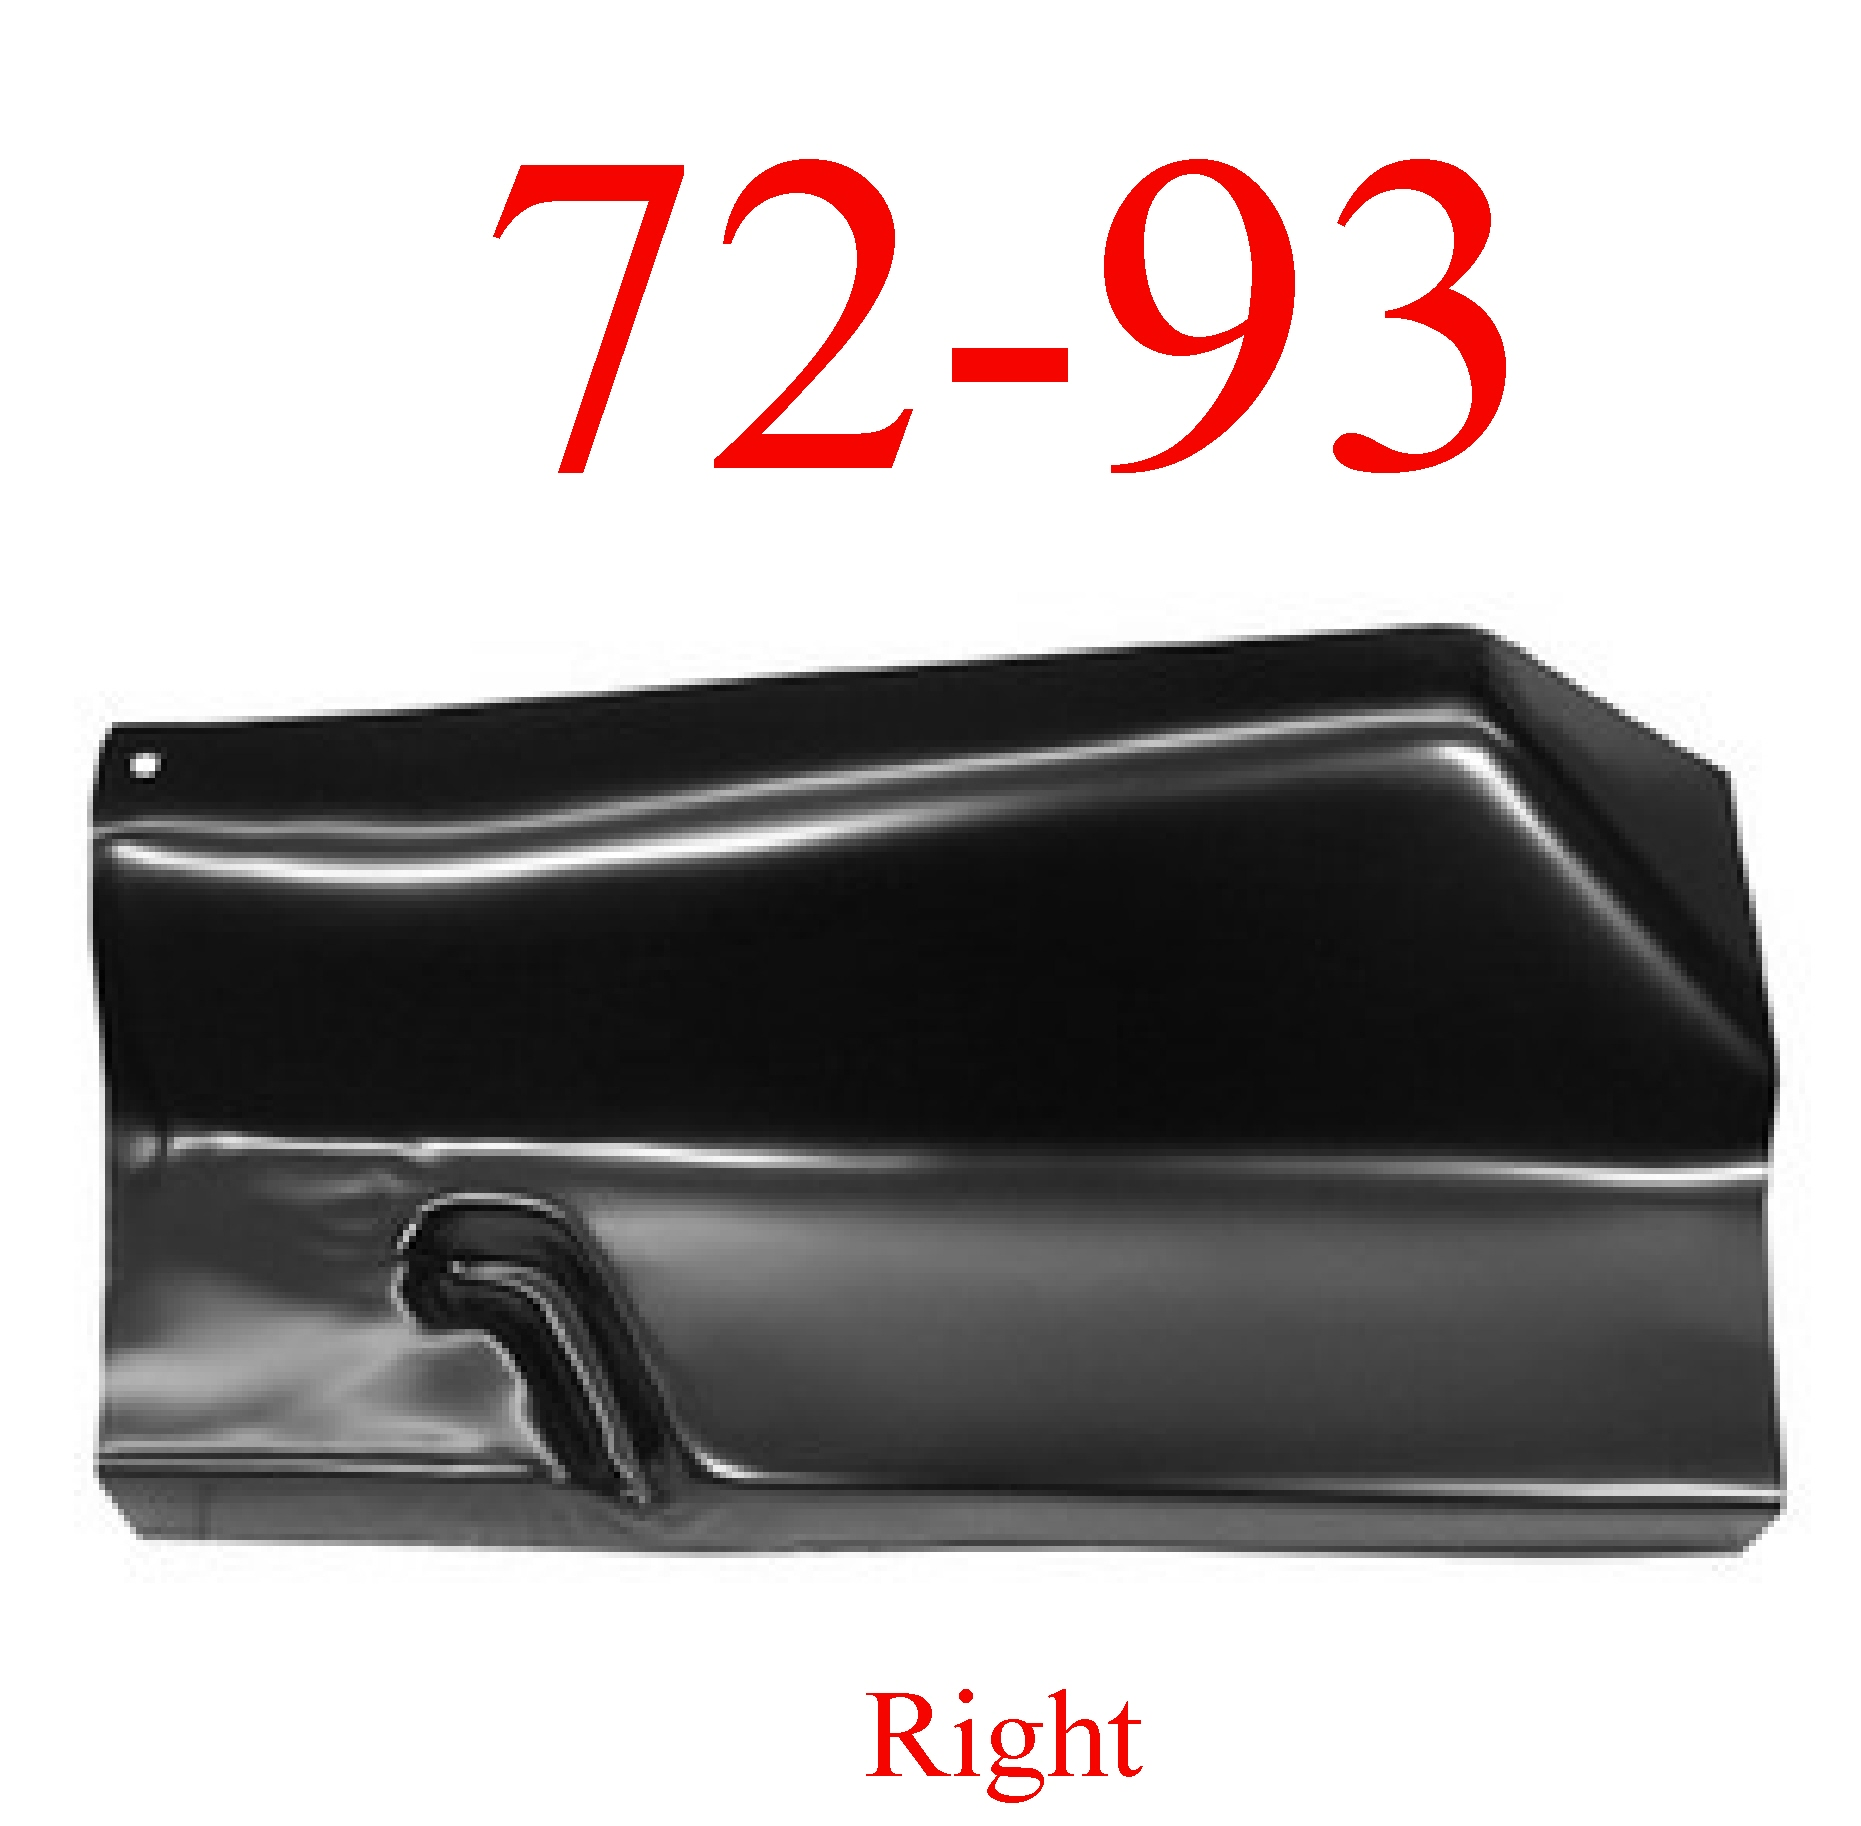 72-93 Dodge Right Outer Floor Panel